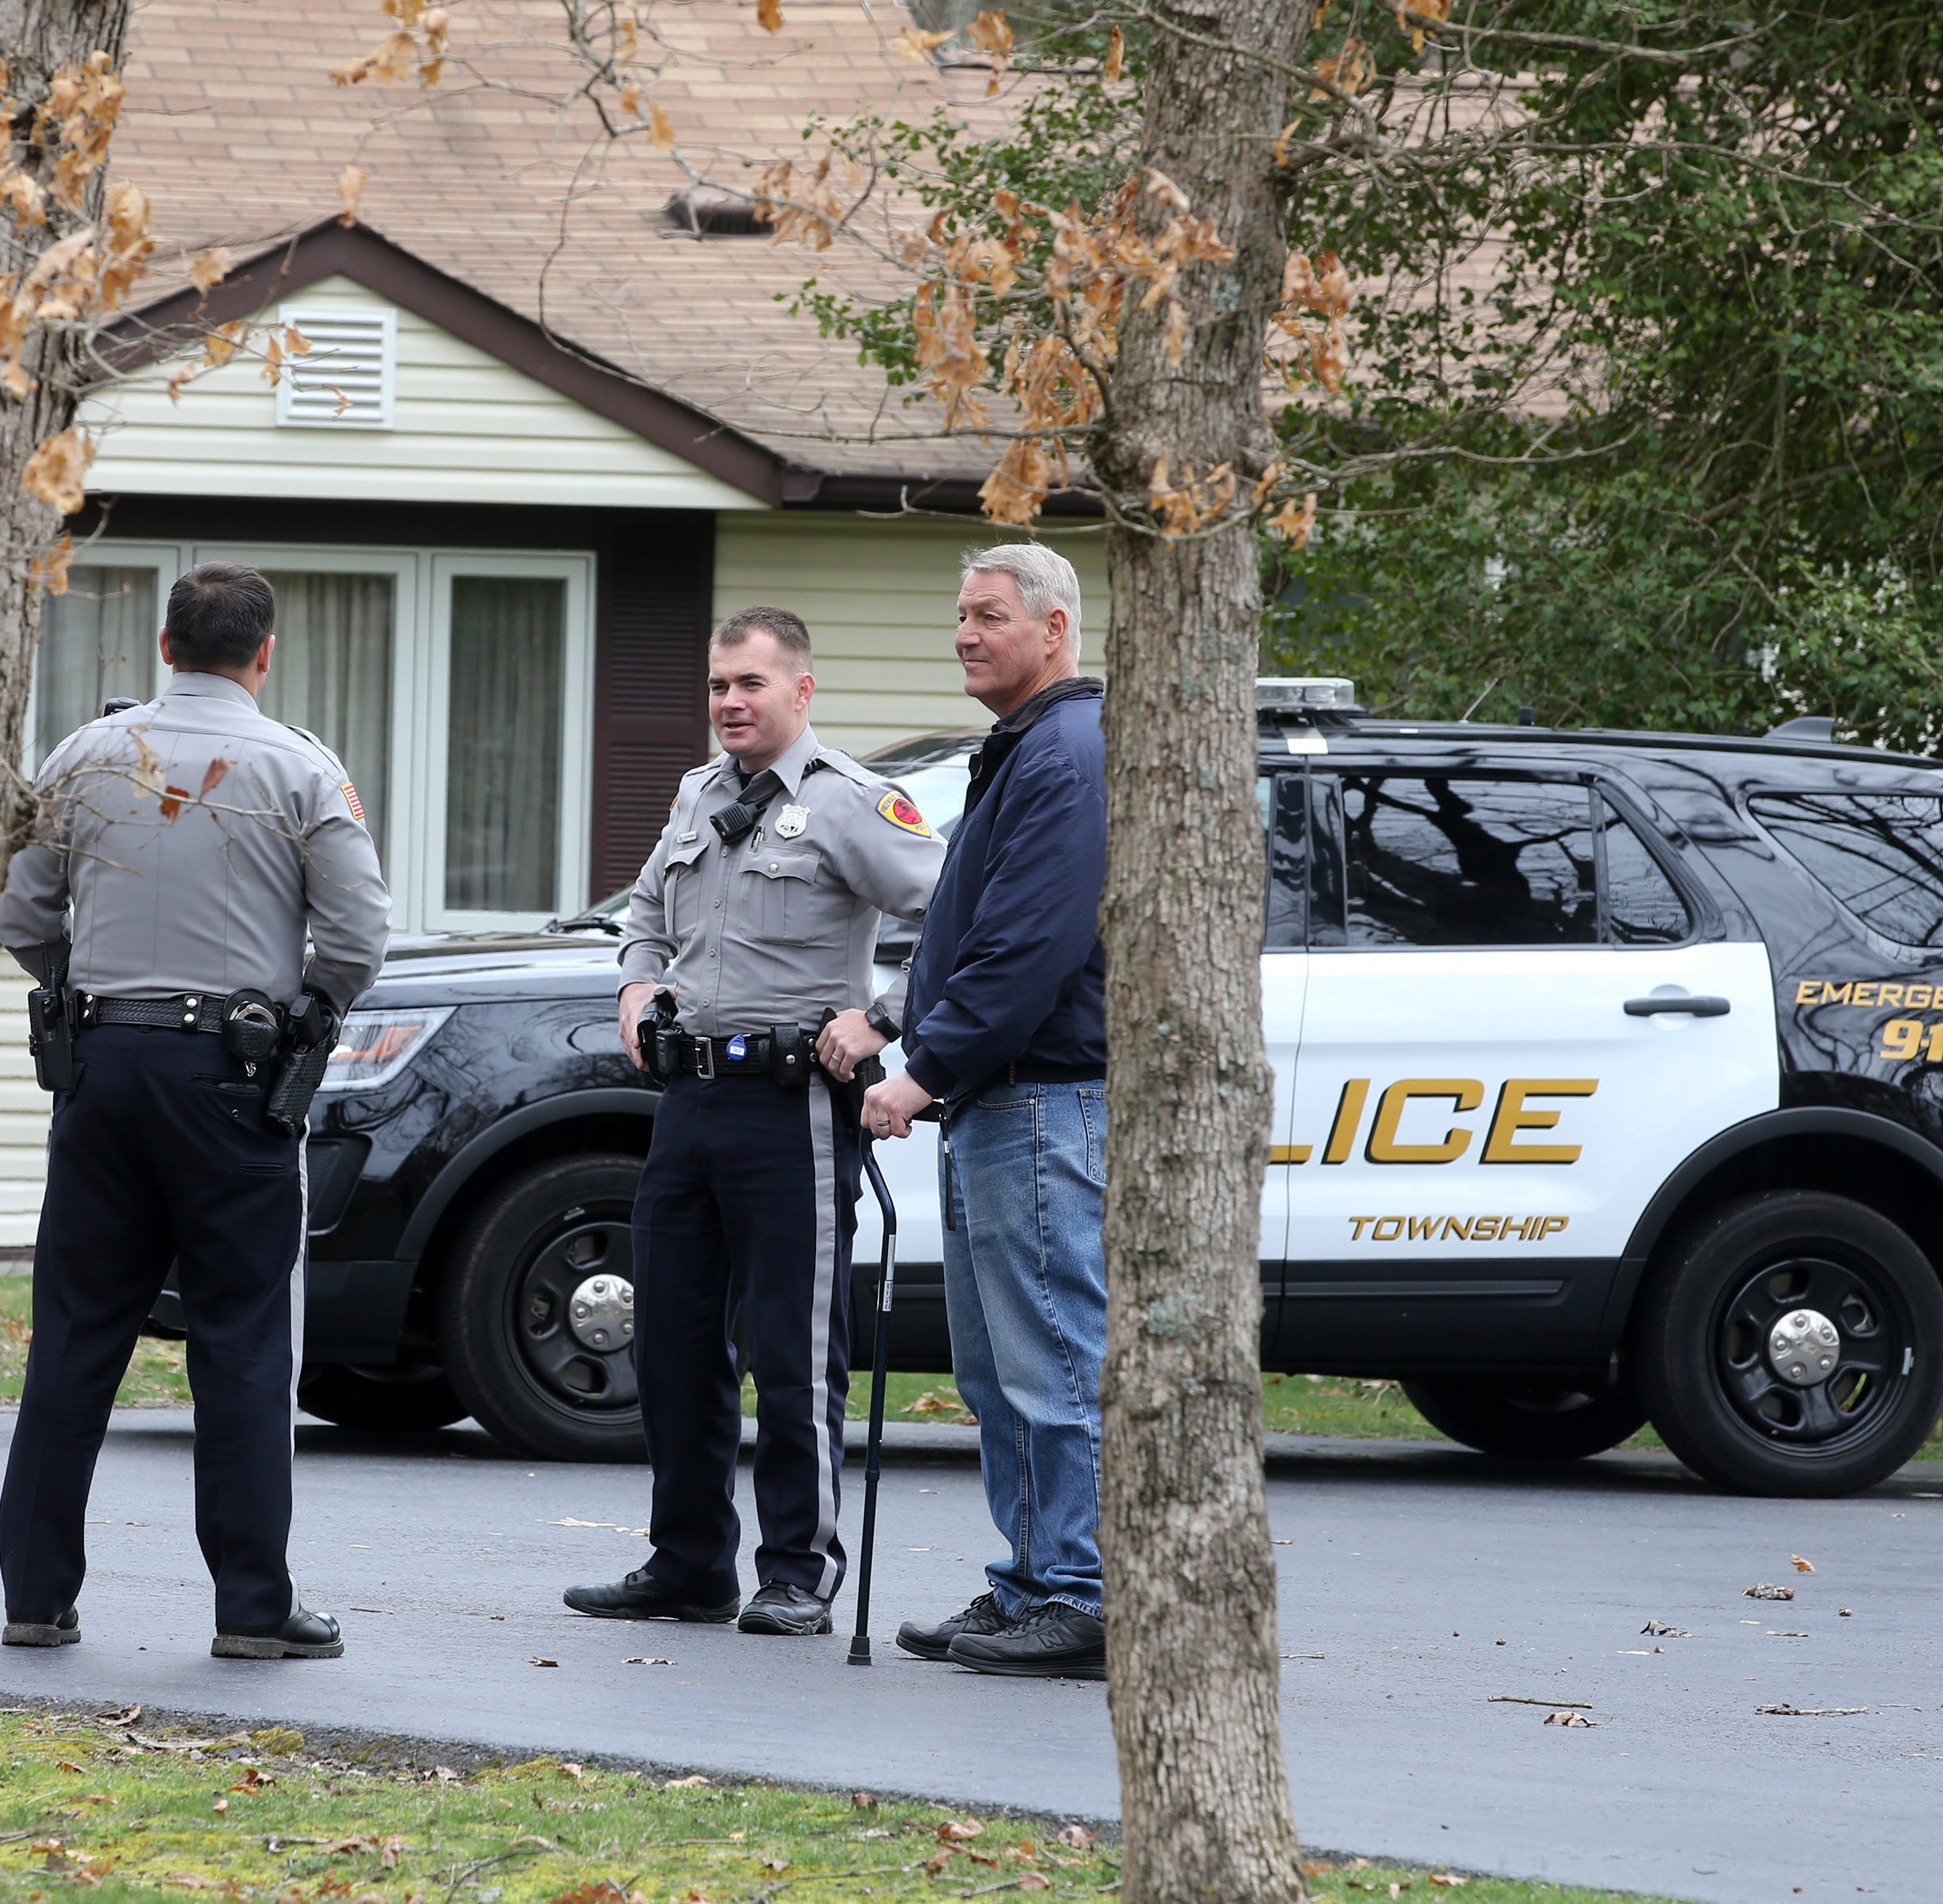 Bomb squads head to Freehold Twp. on report of old mortar round in home